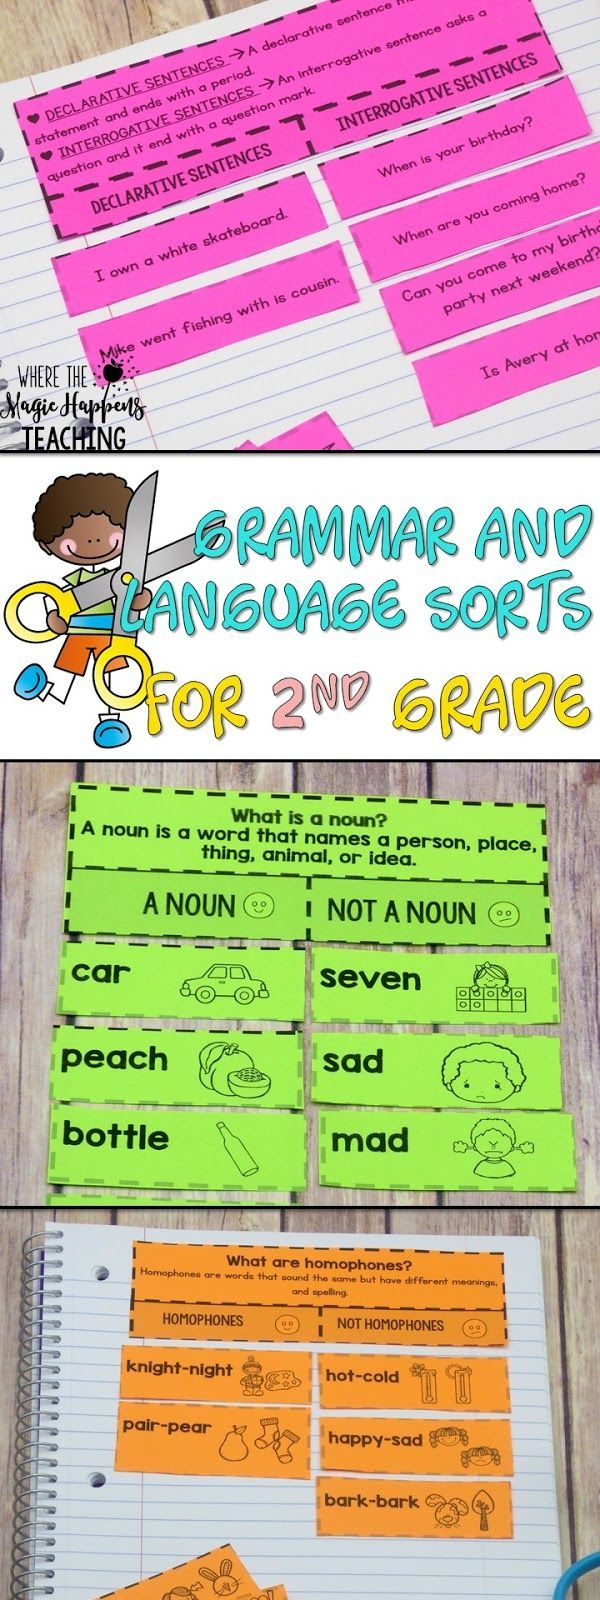 Language arts and grammar sorts for students 2nd grade. Includes parts of speech, plurals, sentences, word sorts, word relationships and much more. These activities are Common Core aligned and they will the perfect addition to your language arts lesson plans. #literacycenters #secondgrade #guidedreading